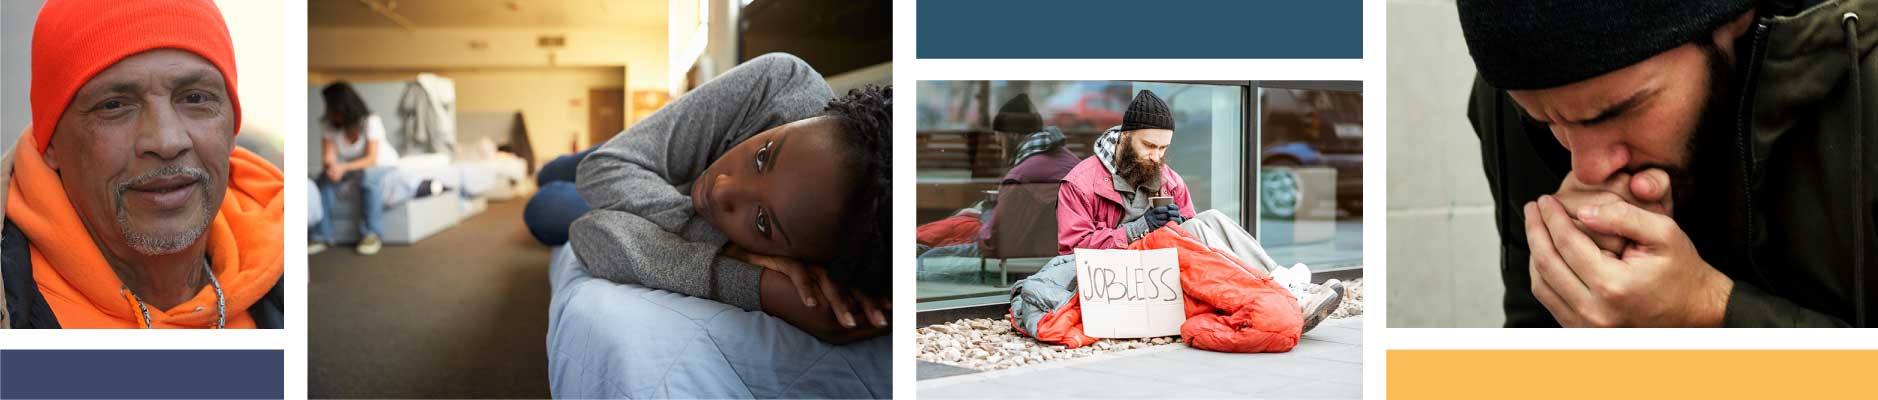 Photo collage of homeless people